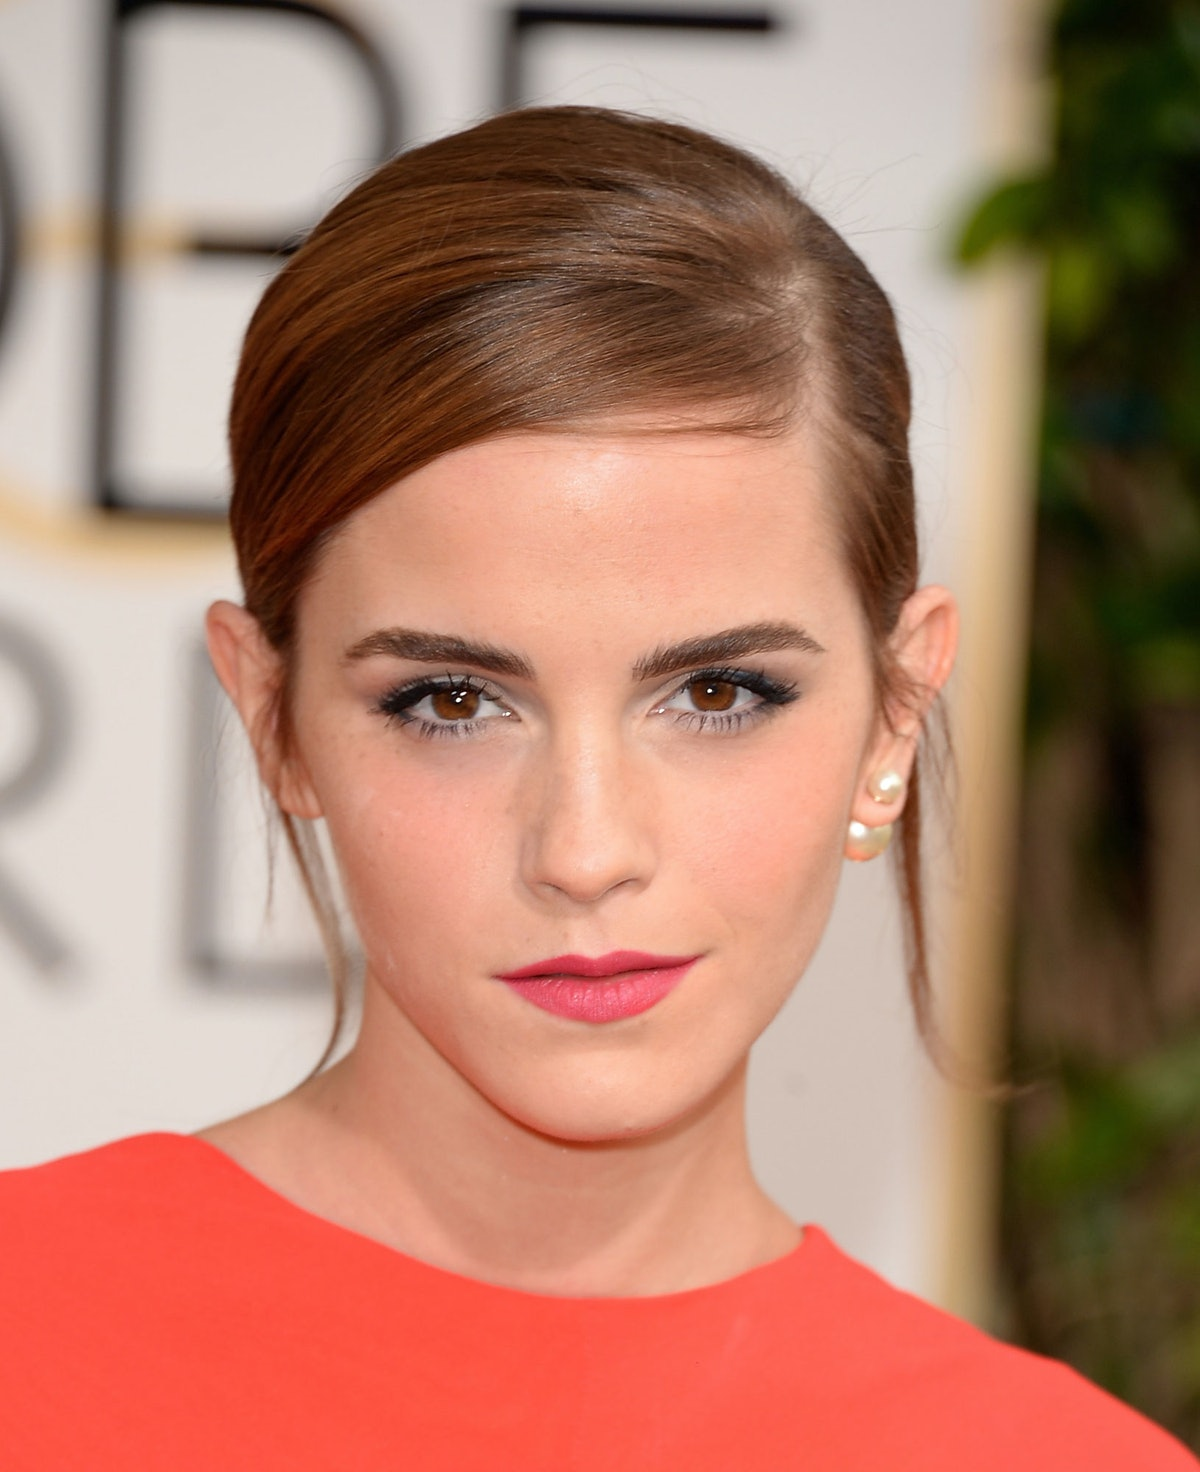 From her slightly teased side chignon that channeled Bardot to the matte-pink statement lip, complet...